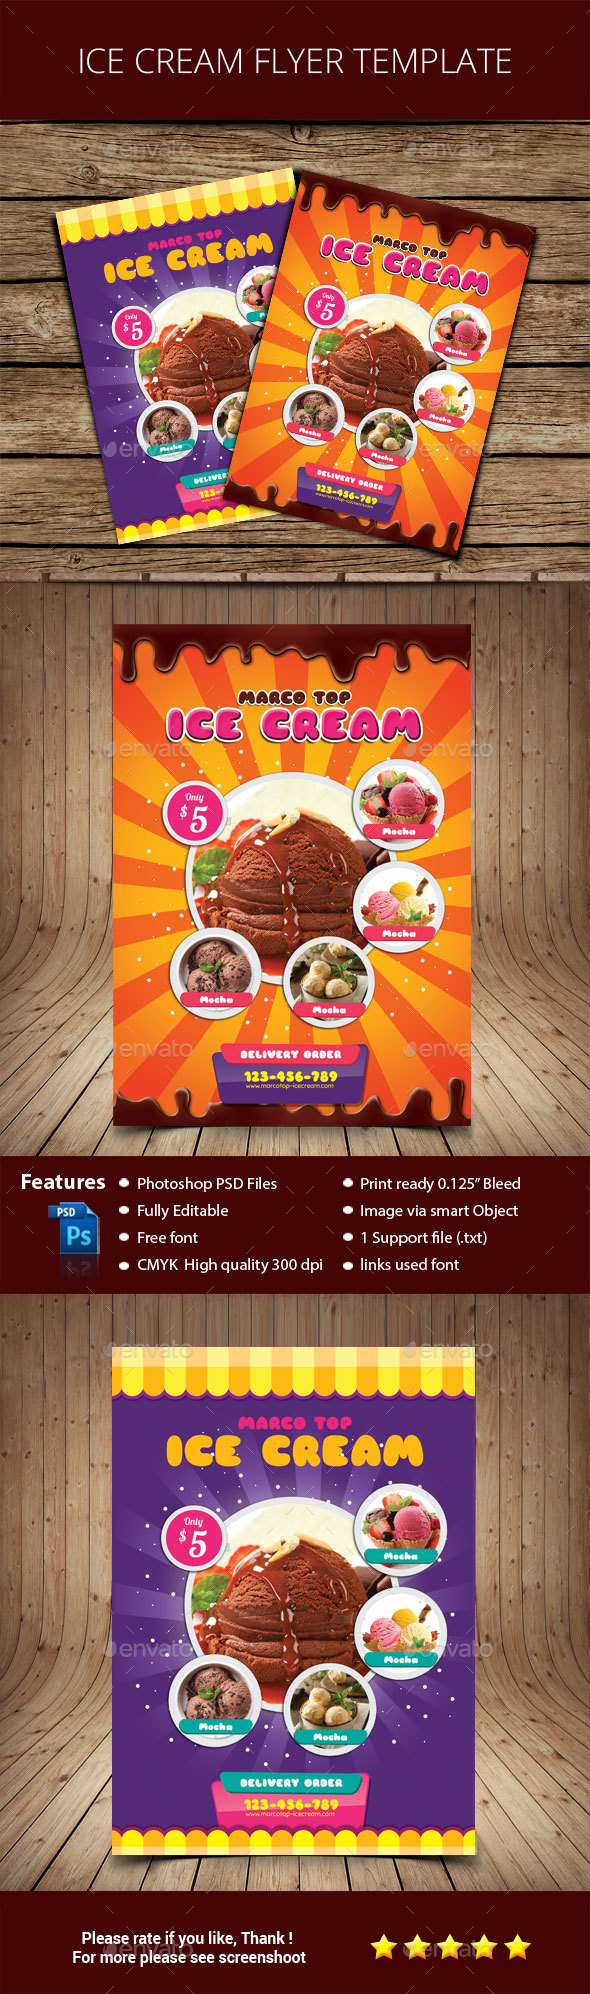 Ice Cream Flyer Template - Corporate Business Cards